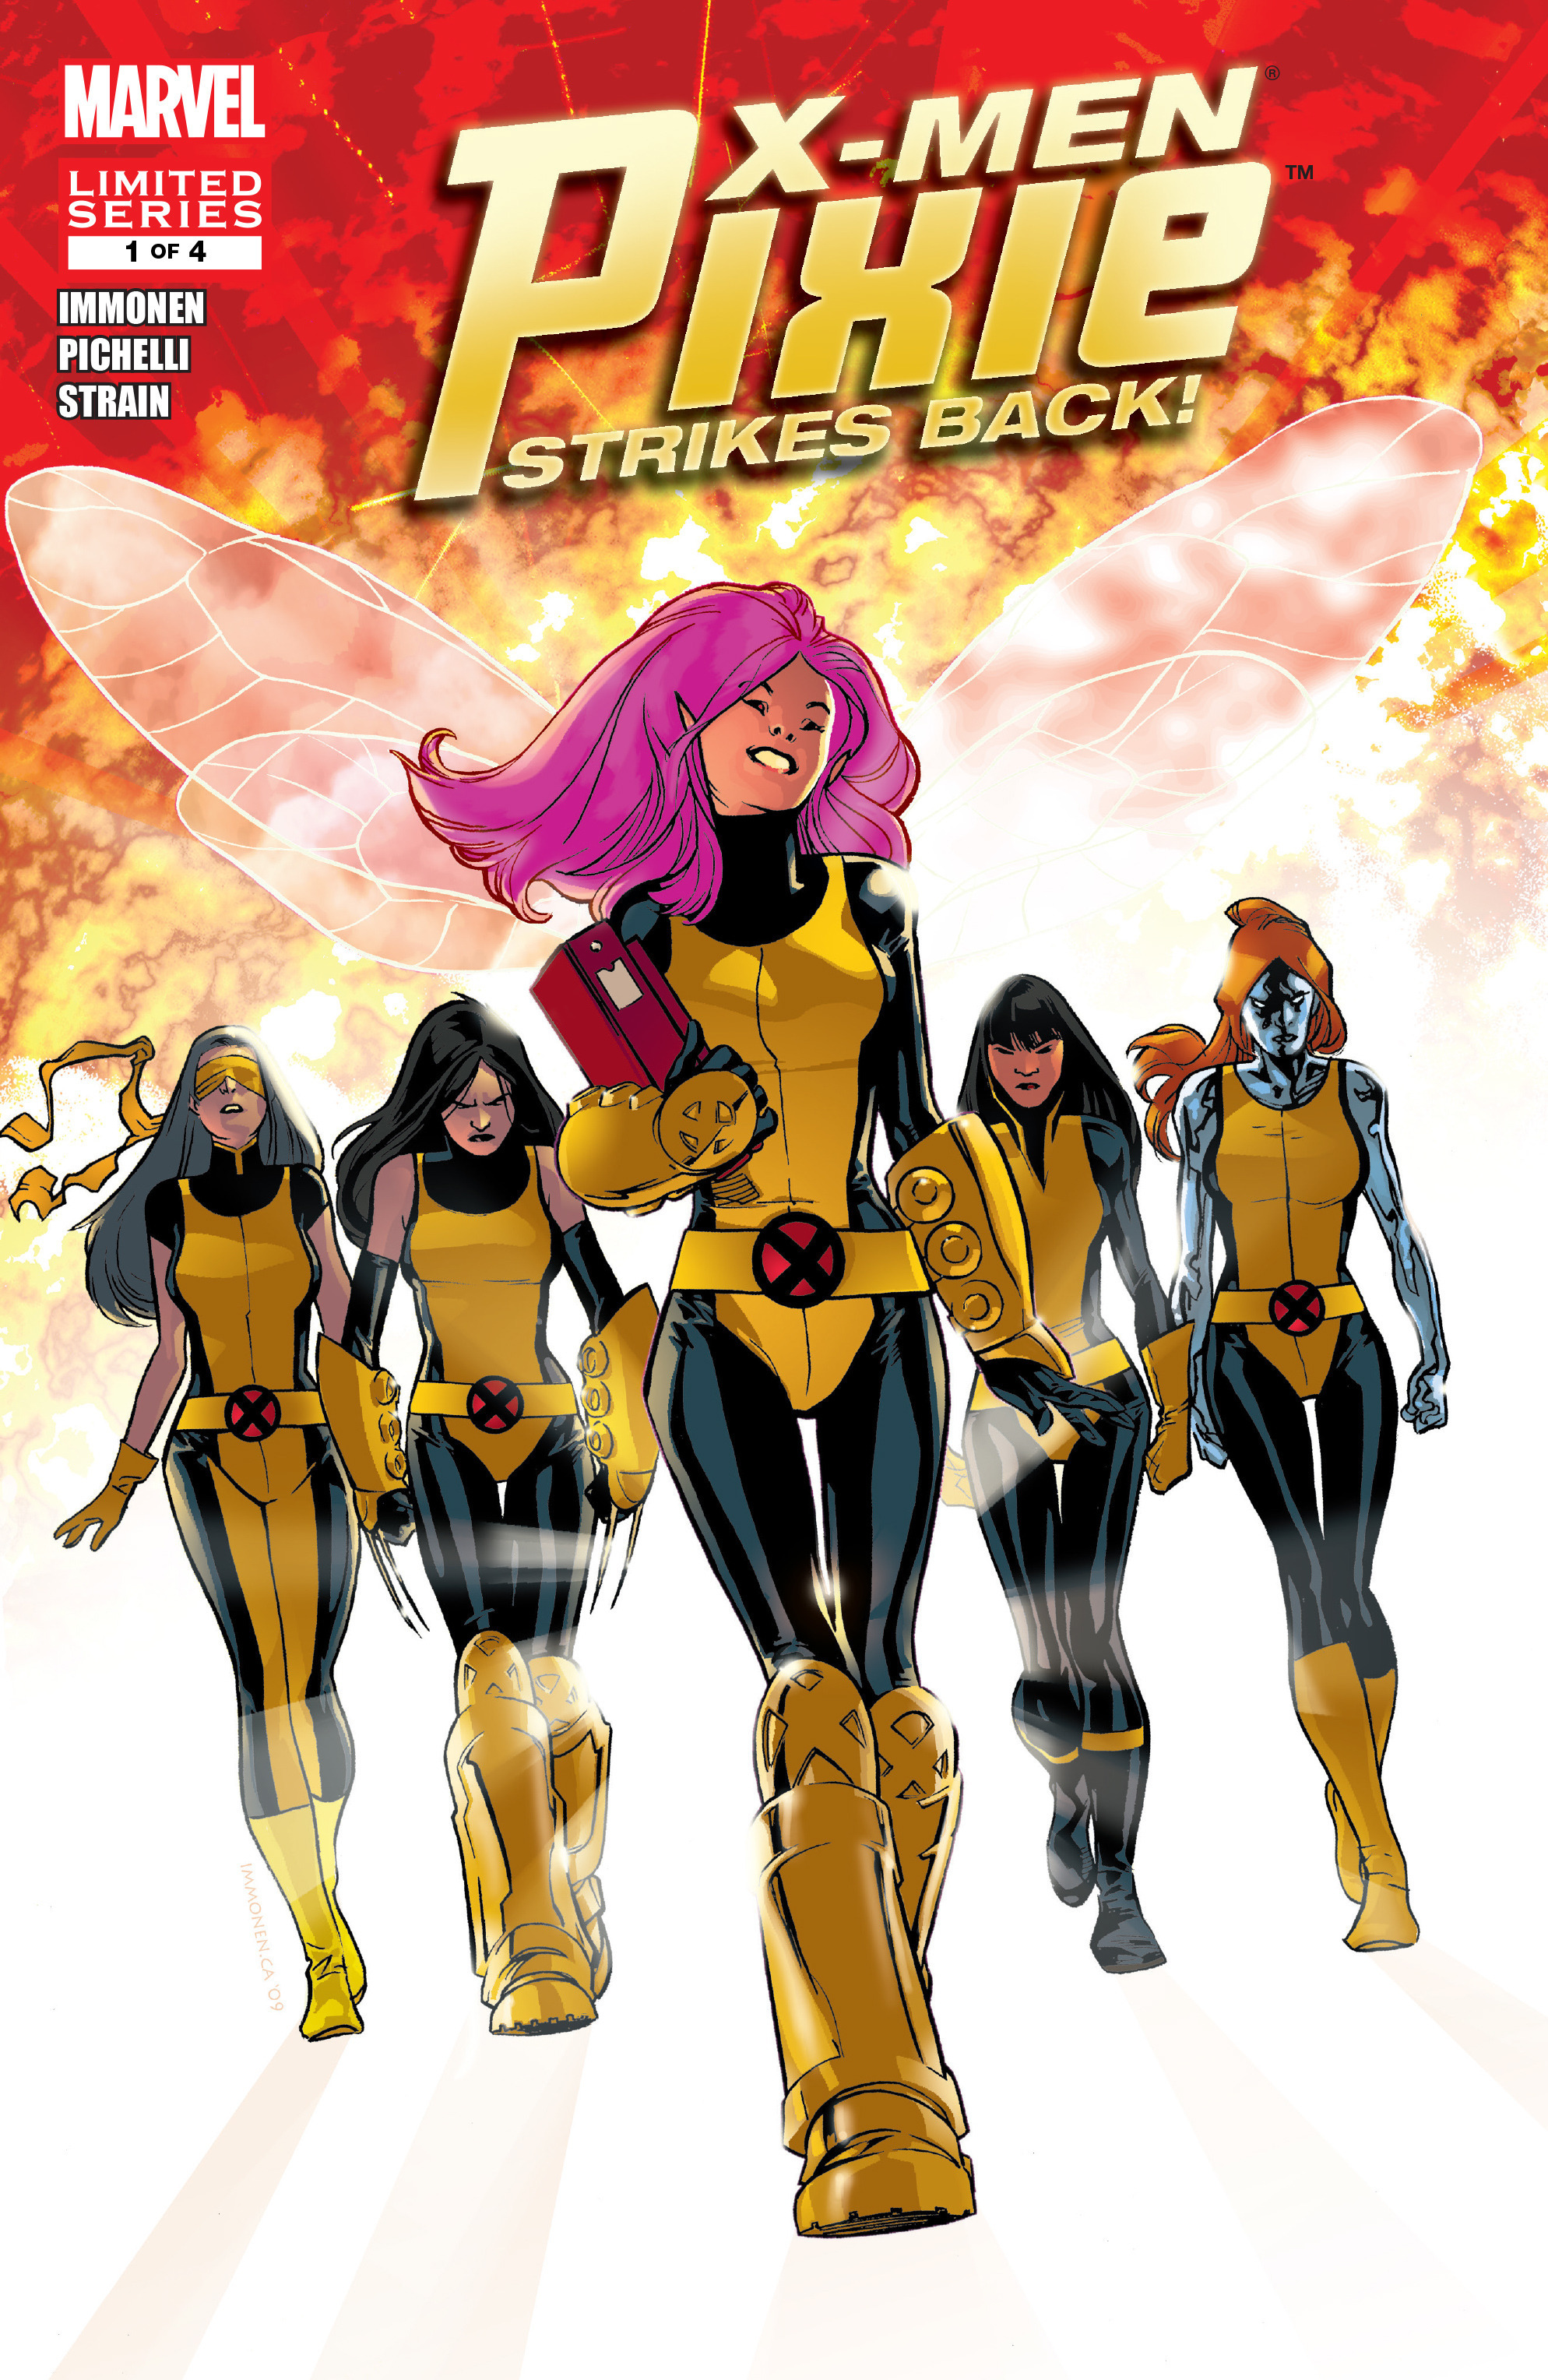 X-Men: Pixie Strikes Back Vol 1 1